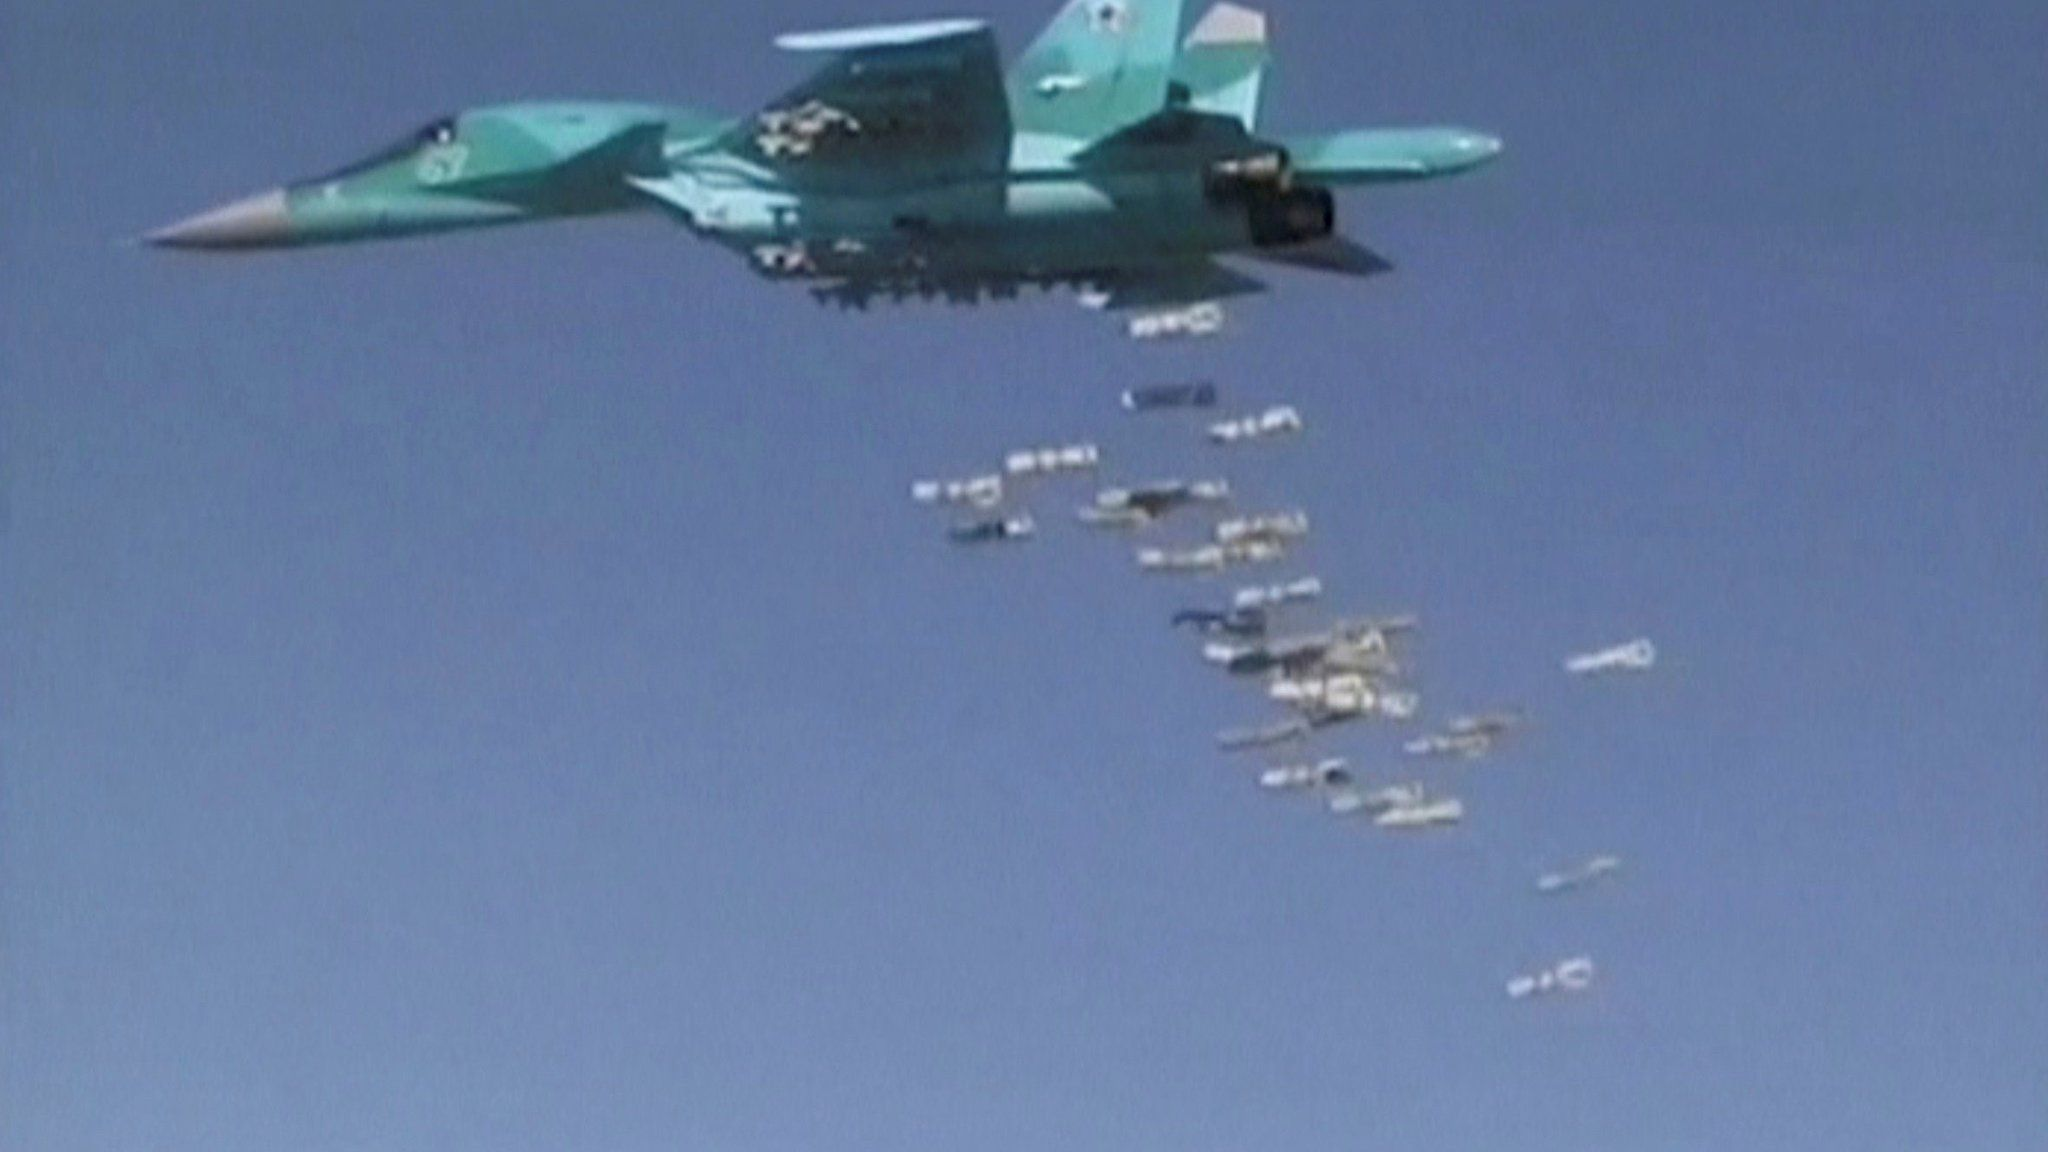 A still image, taken from video footage released by the Russian Defence Ministry on 18 August 2016, shows a Russian Sukhoi Su-34 strike fighter based in Iran dropping bombs on Deir al-Zour province in Syria